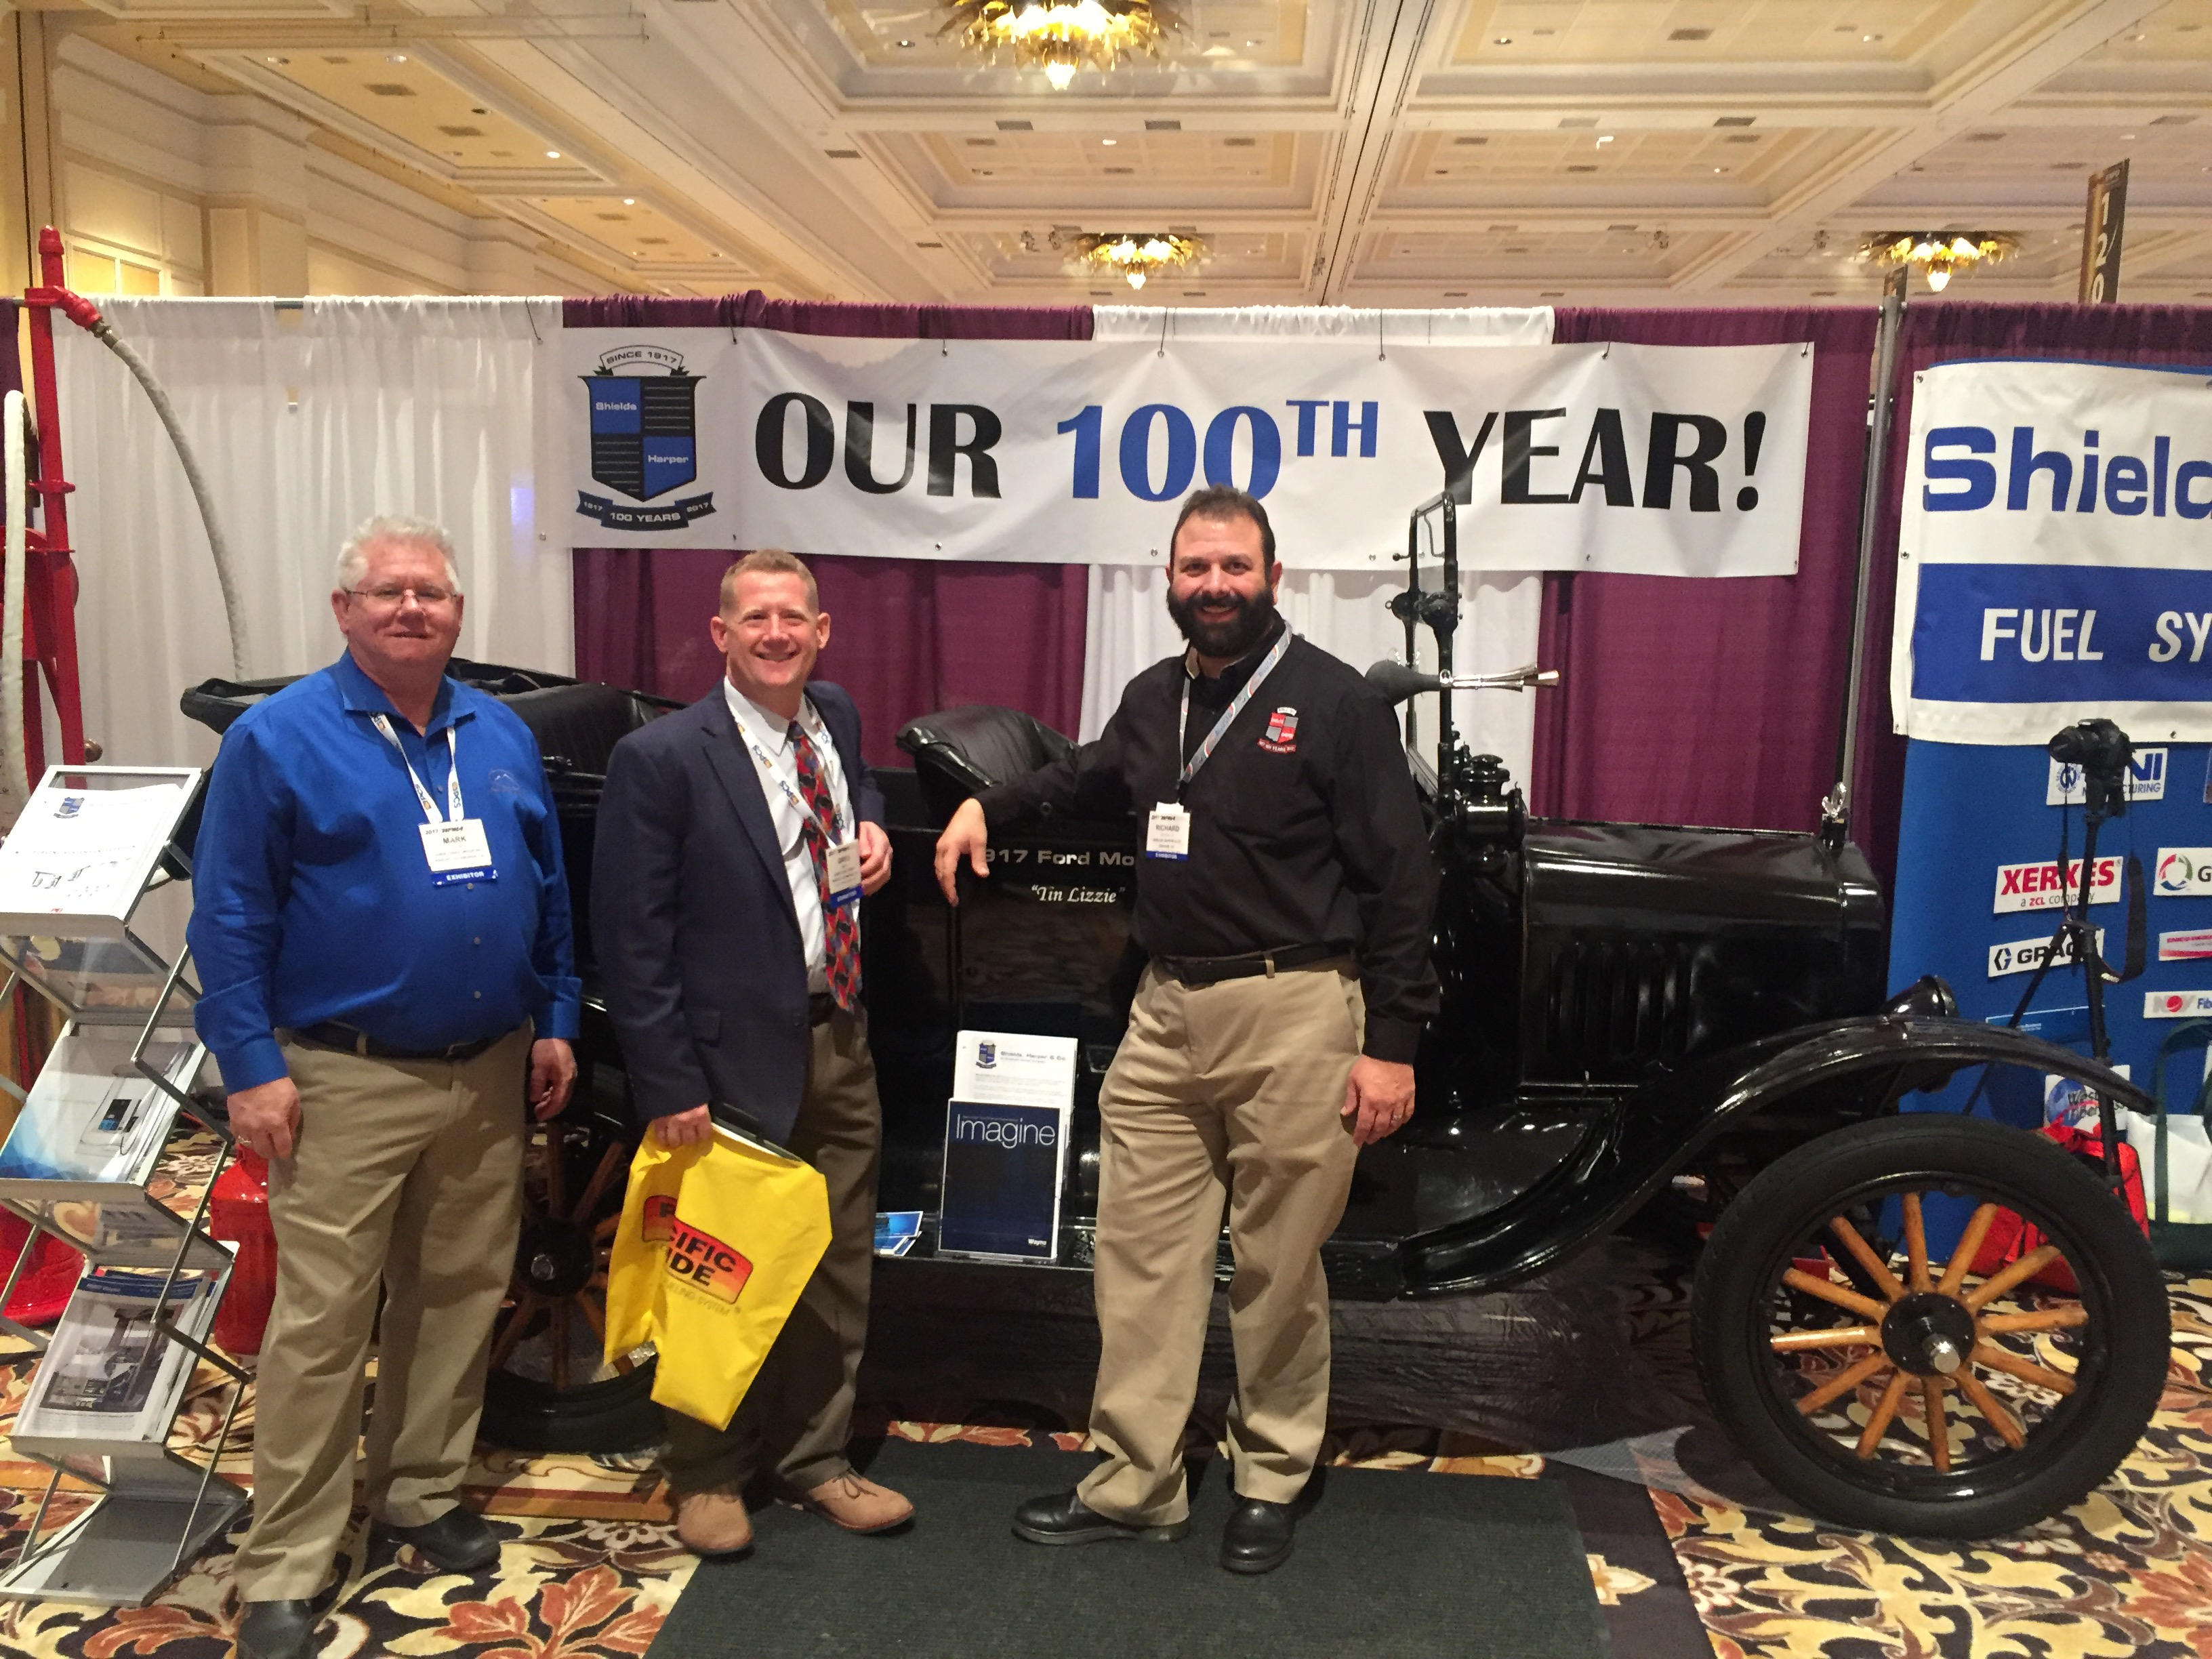 Shields, Harper & Co WPMA Booth with Richard Iacovelli and customers standing next to 1917 Ford Model T Tin Lizzie